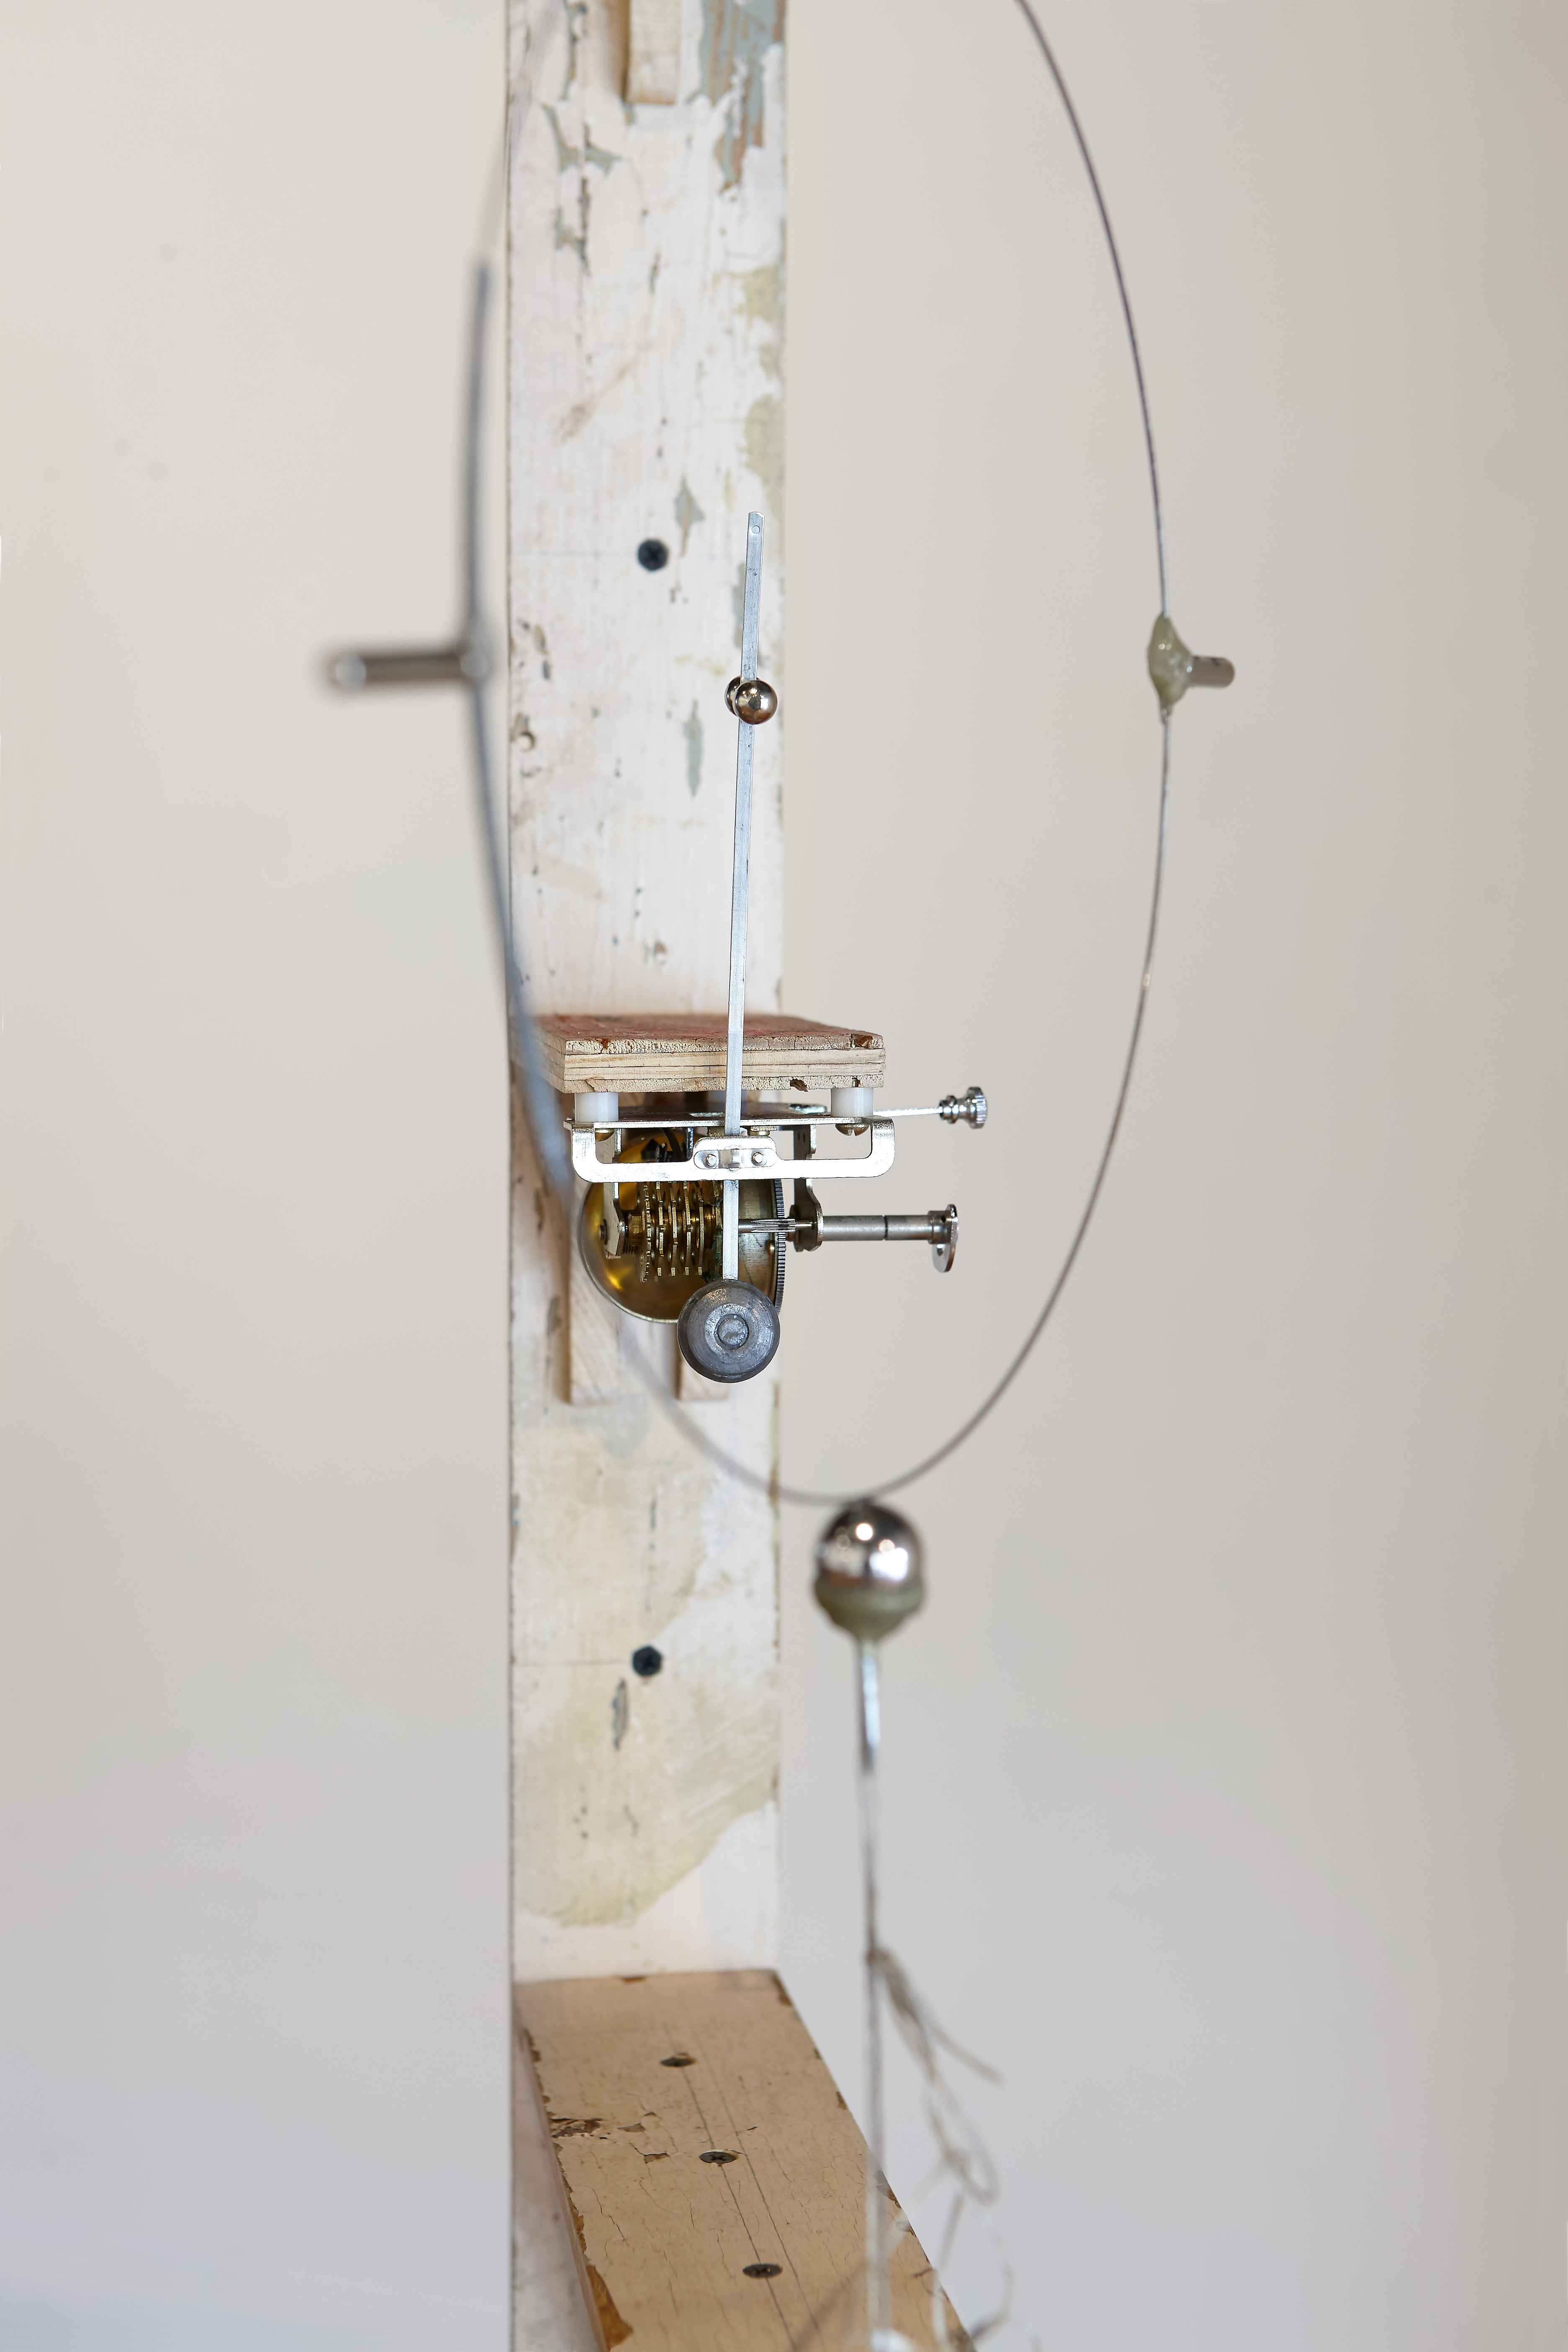 untitled (4:1), detail, 2013-17